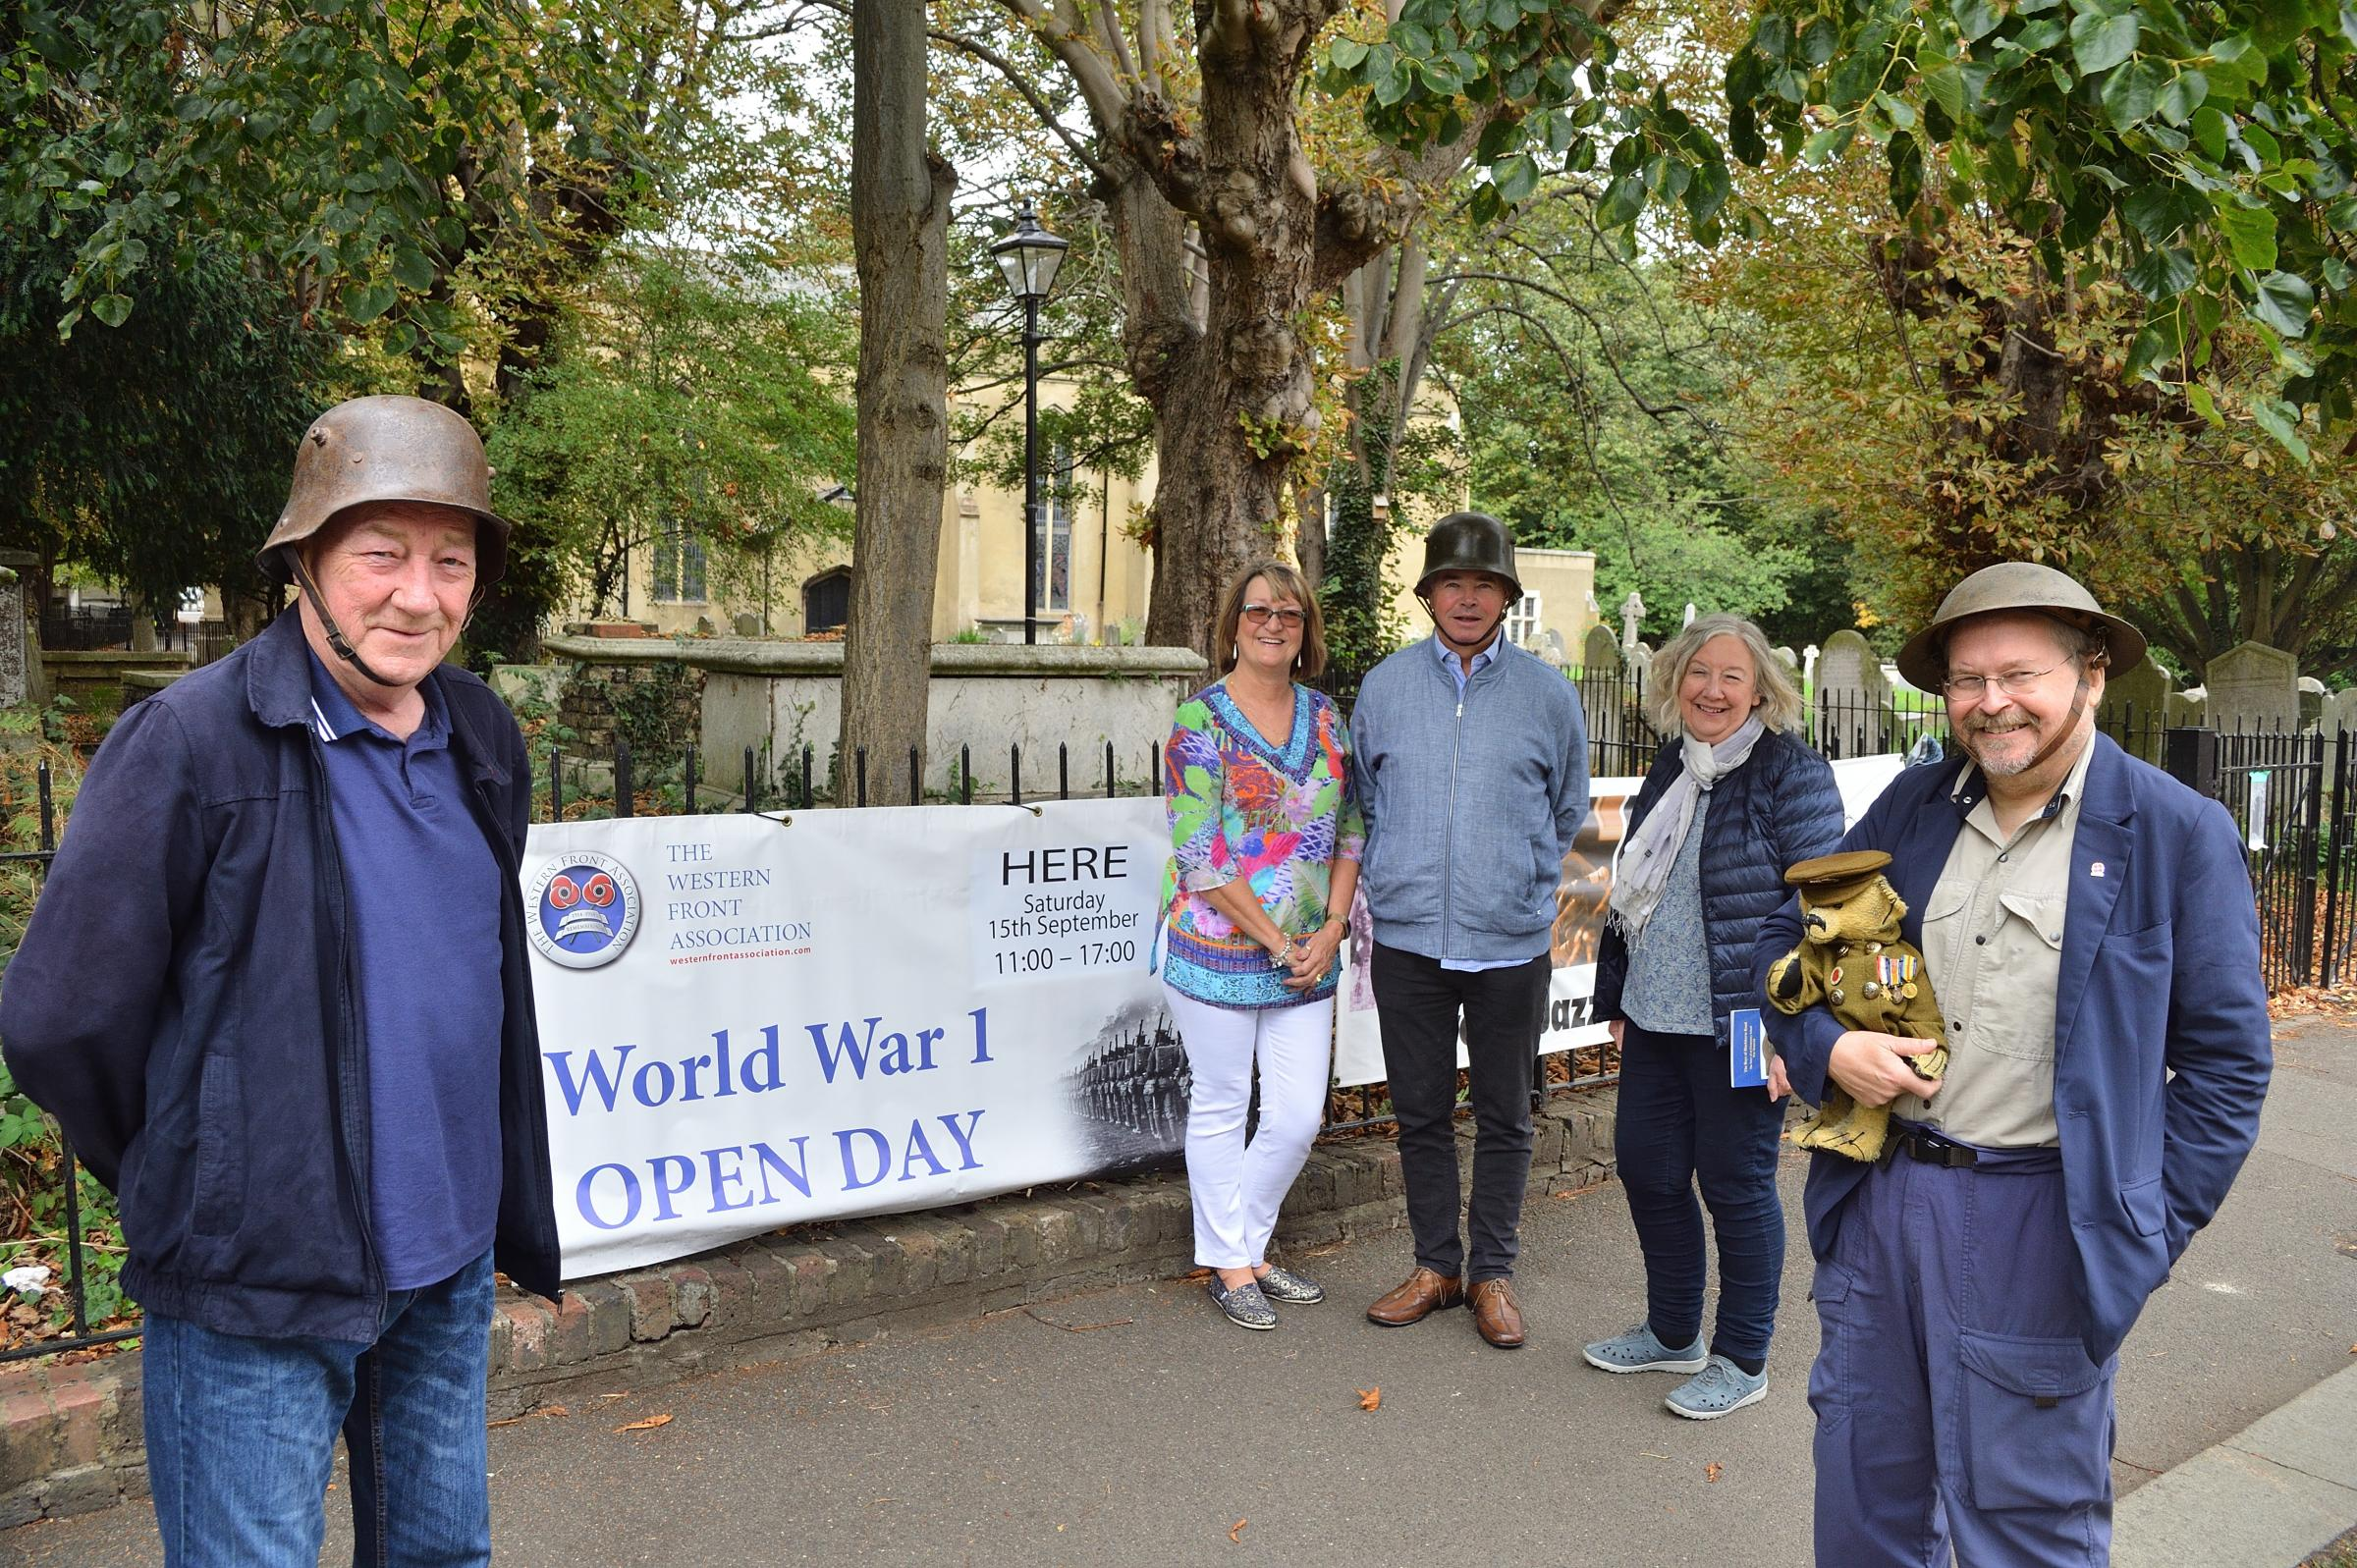 Members of the East London Western Front Association (WFA) Chris Daughters, Sally Pearce, Neil Pearce and Eve Wilson and Chris Hunt (with mascot Kyle) prepare for the upcoming World War One Open Day in Walthamstow